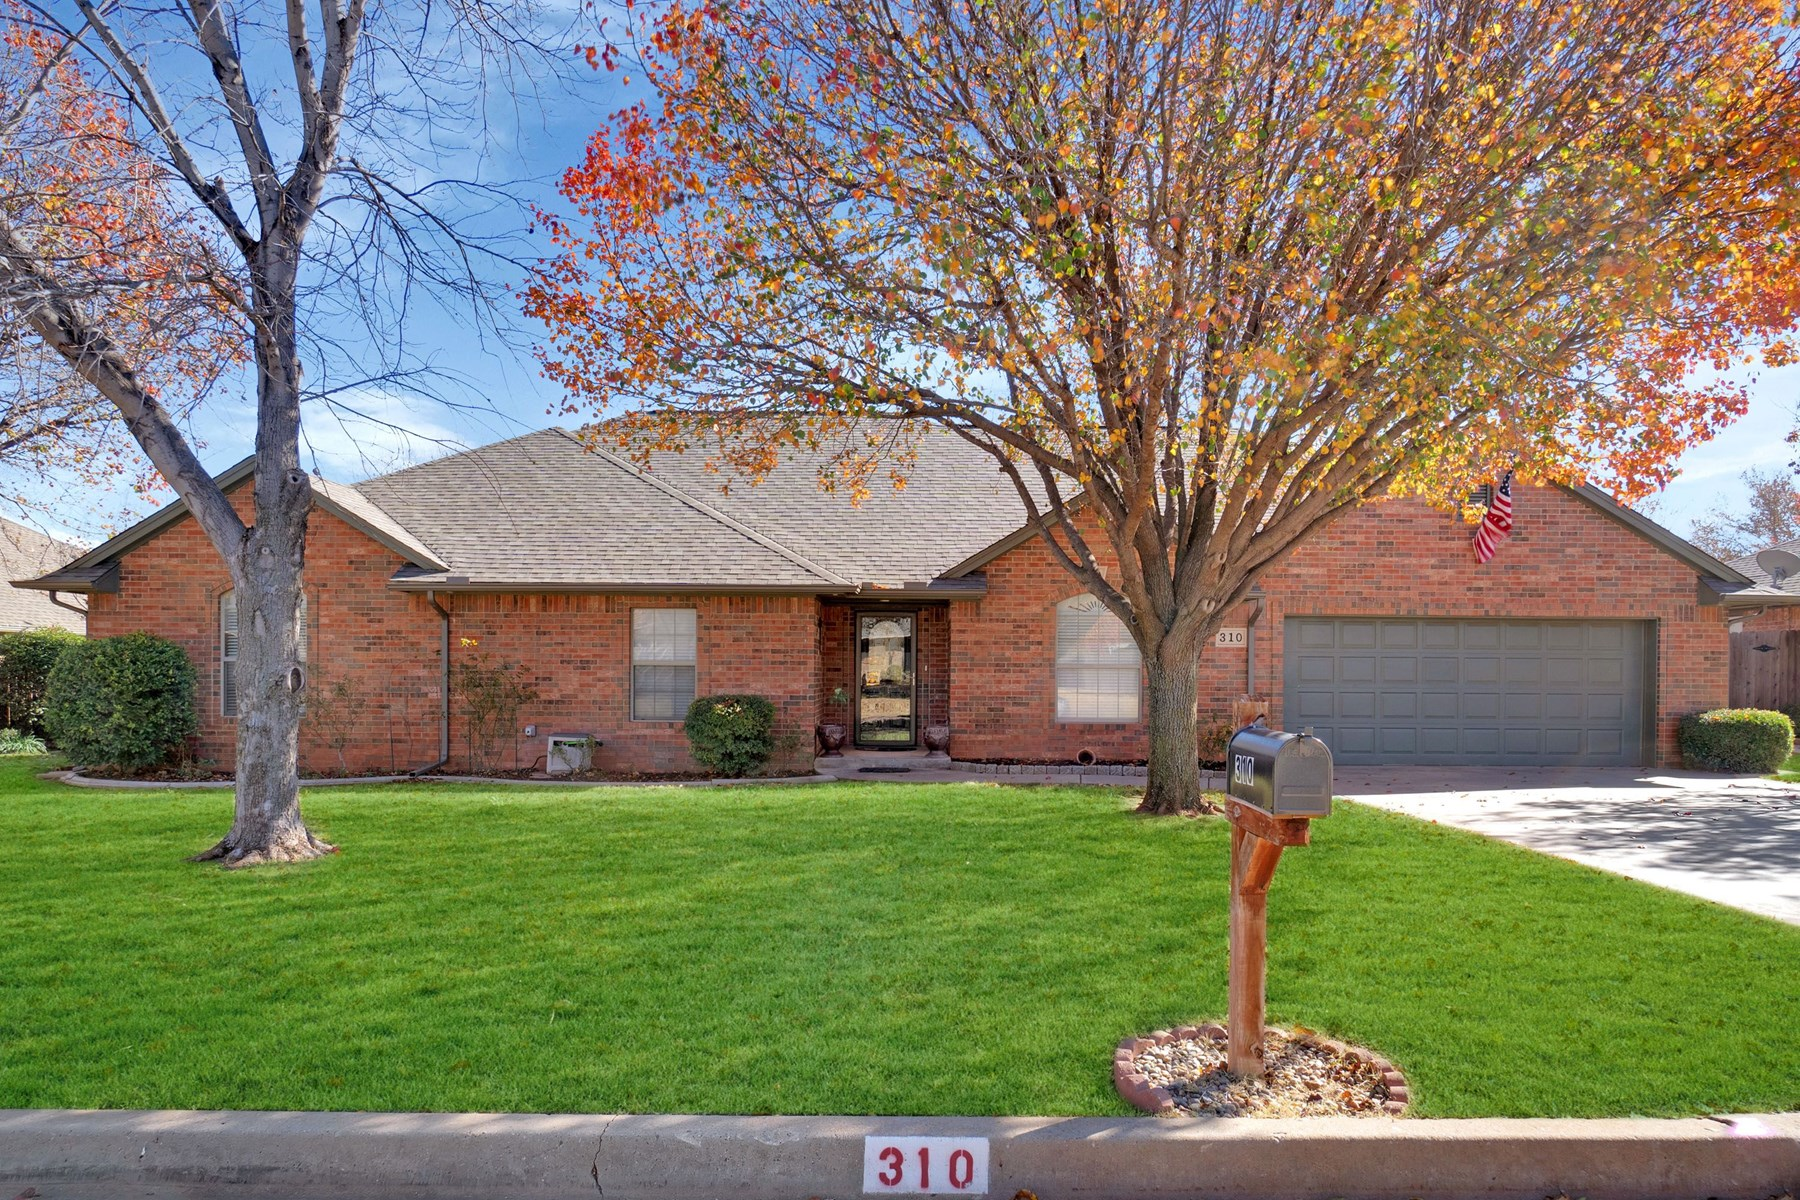 3 BED 2.5 BATH HOME FOR SALE IN ELK CITY, OK